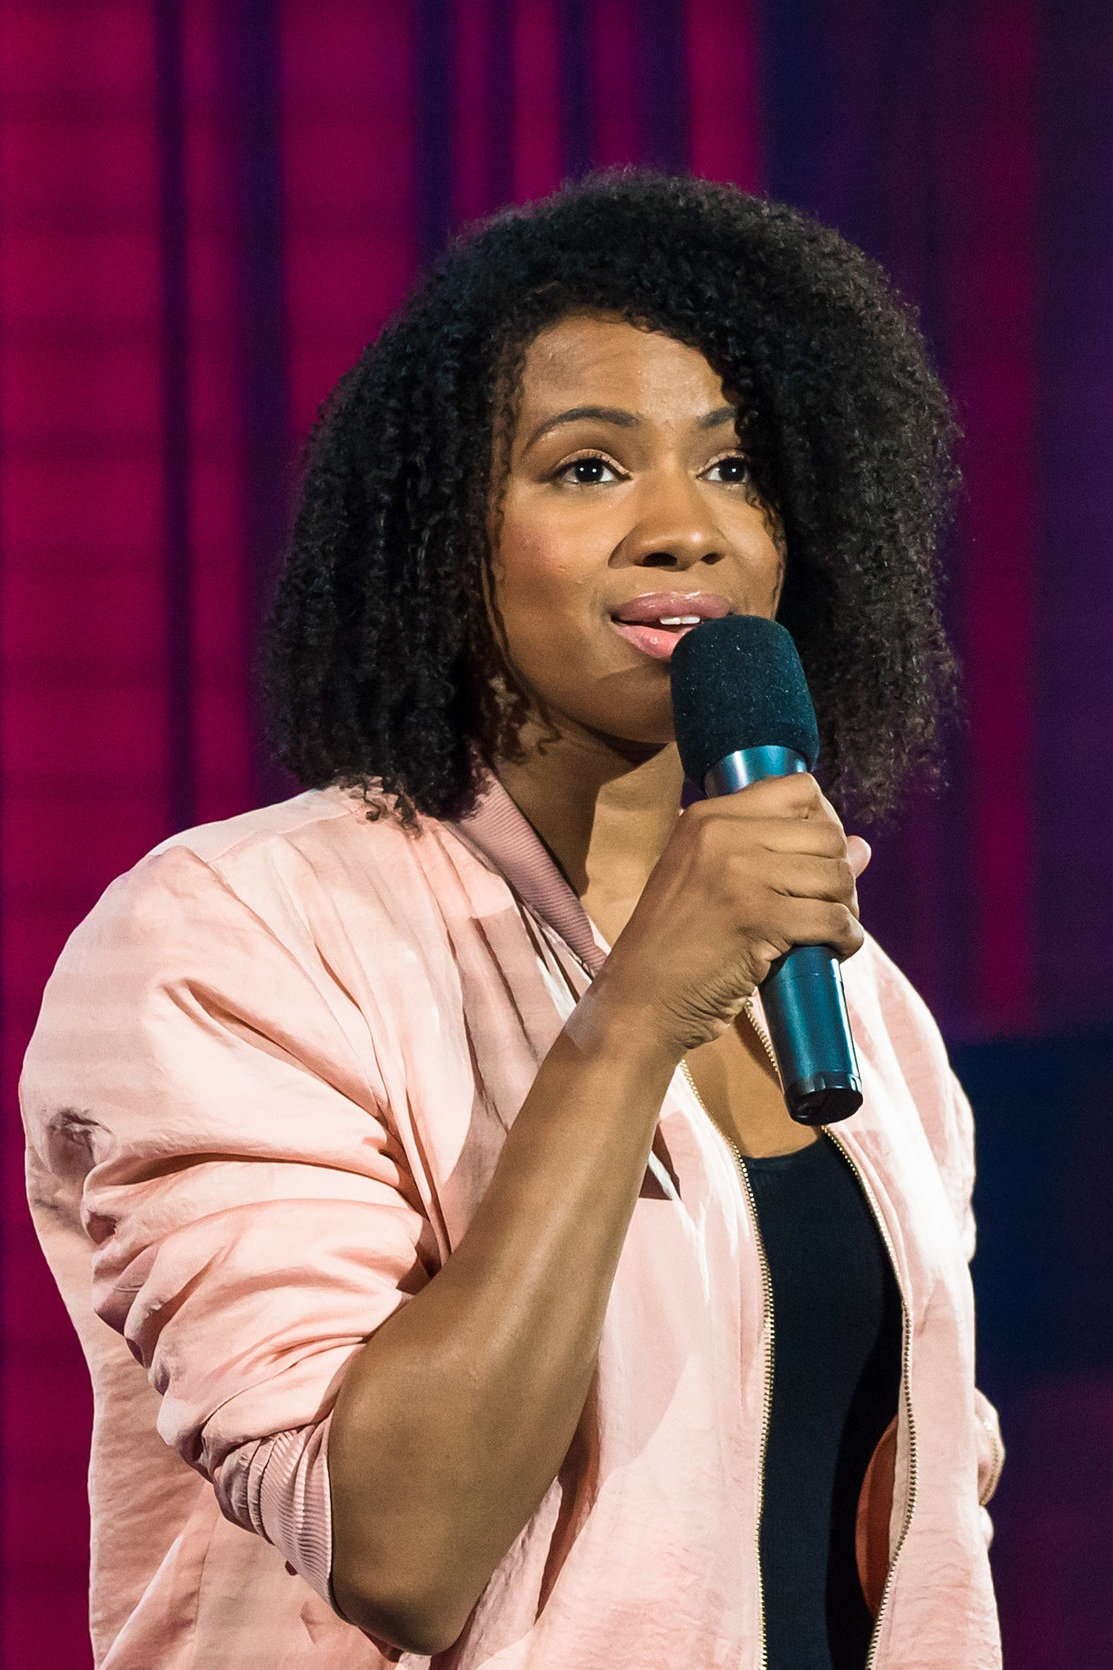 Aisha Brown - Aisha Brown is known as one of the top 3 Aisha's in North American stand-up comedy. She has made multiple appearances Montreal's renowned Just For Laughs festival taping two All Access televised sets for the Comedy Network, and as a featured performer for Kevin Hart's LOL Network. She has also performed at Montreal Sketchfest, the Field Trip Festival, the Guelph Comedy Festival and the Kitchener Waterloo Comedy Festival. Aisha has written for CBC Comedy, Baroness Von Sketch, Just For Laughs, and has been featured multiple times on CBC Radio's The Debaters and Because News. She has also written for and has been featured on The Beaverton on the Comedy Network, and will be taping her first comedy special this summer for CraveTV.